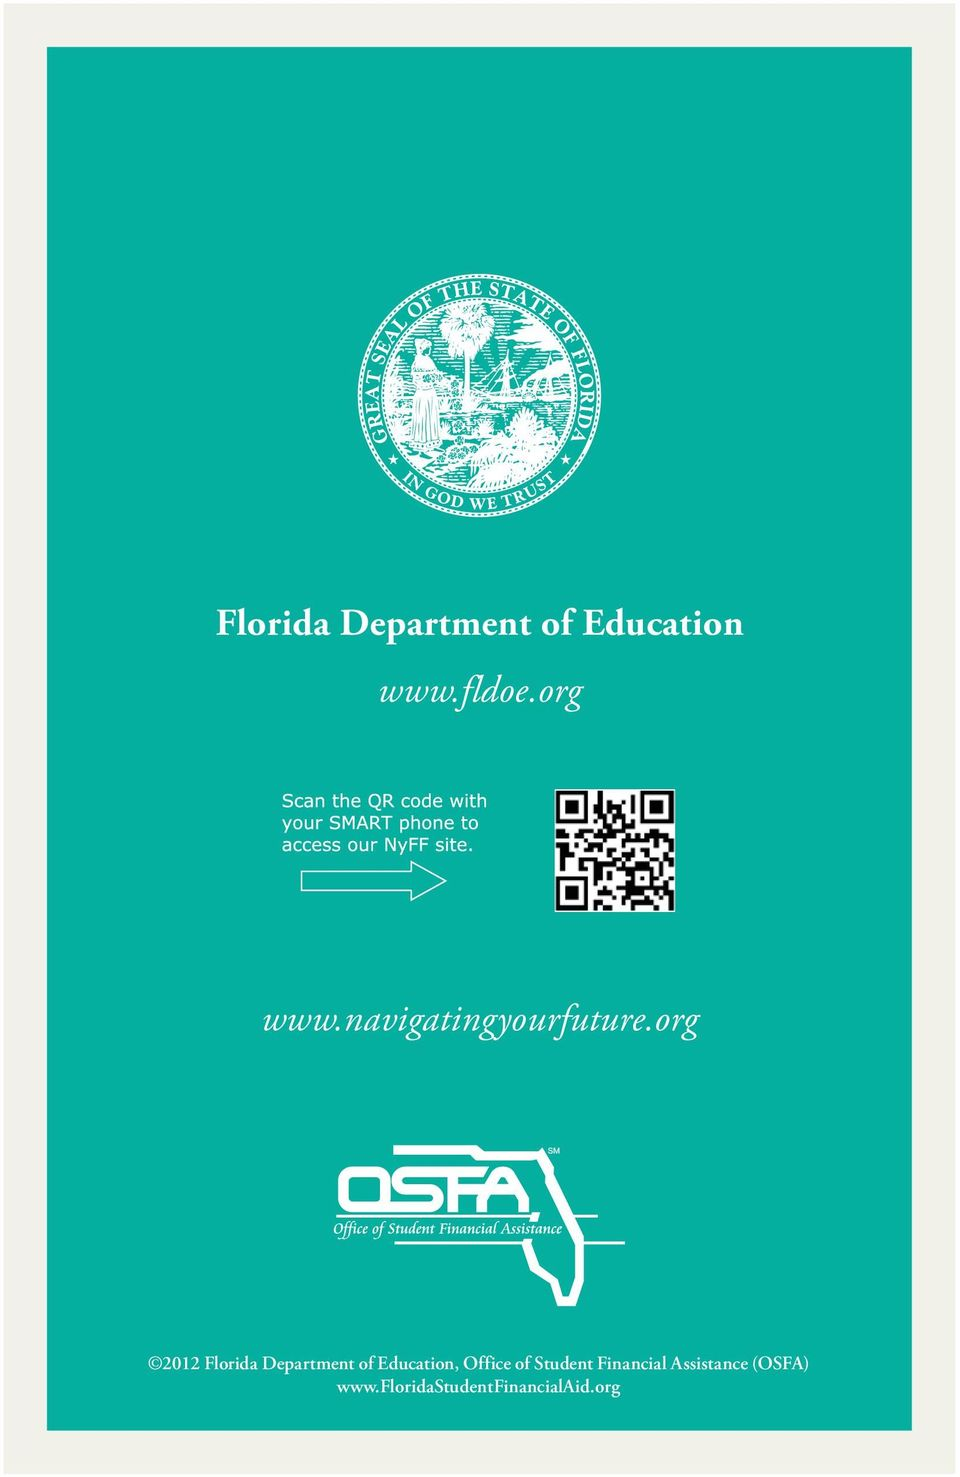 org 2012 Florida Department of Education, Office